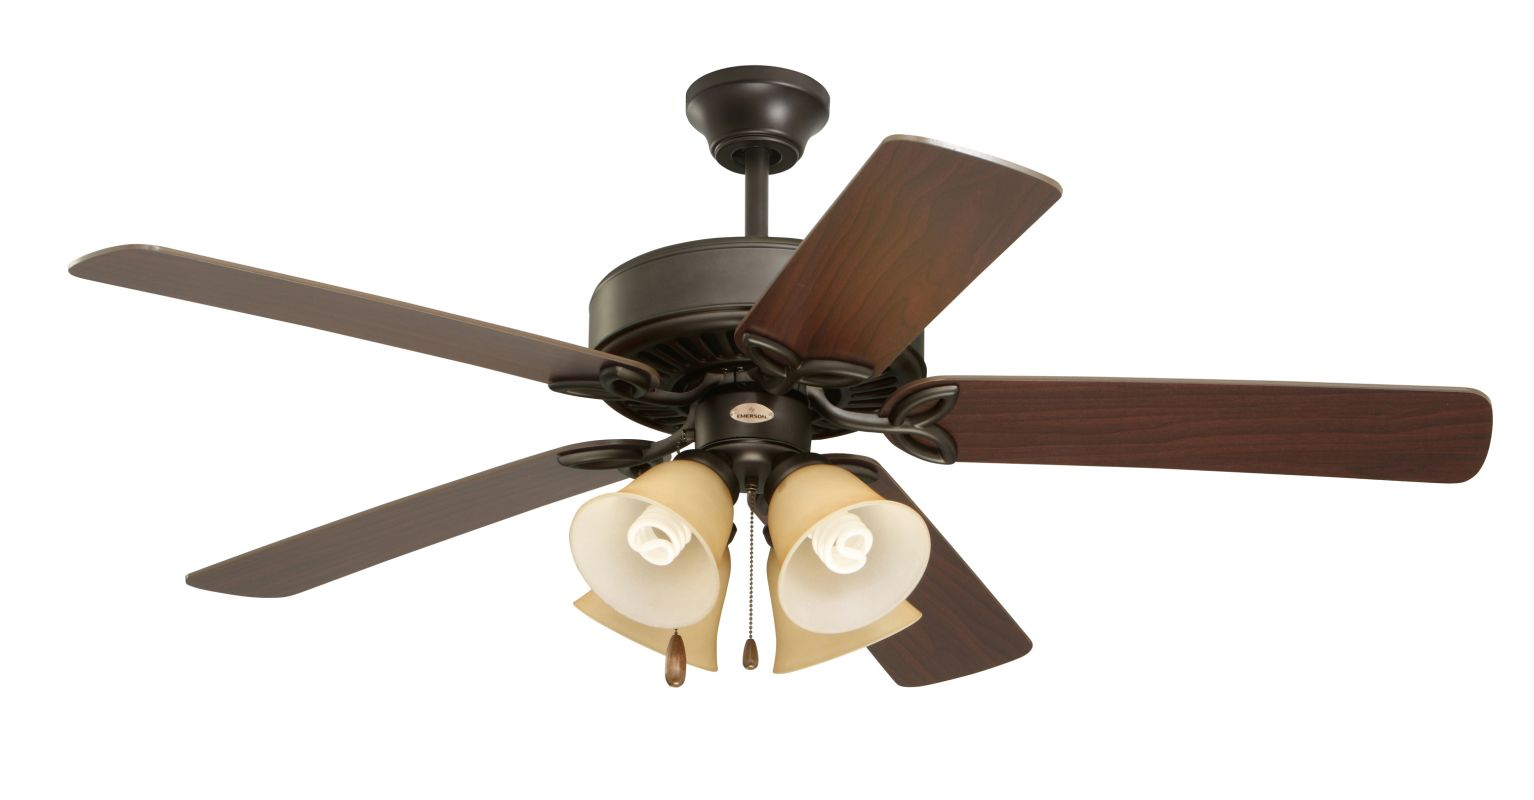 "Emerson CF711 Builder Plus 50"" 5 Blade Ceiling Fan - Blades and Light"